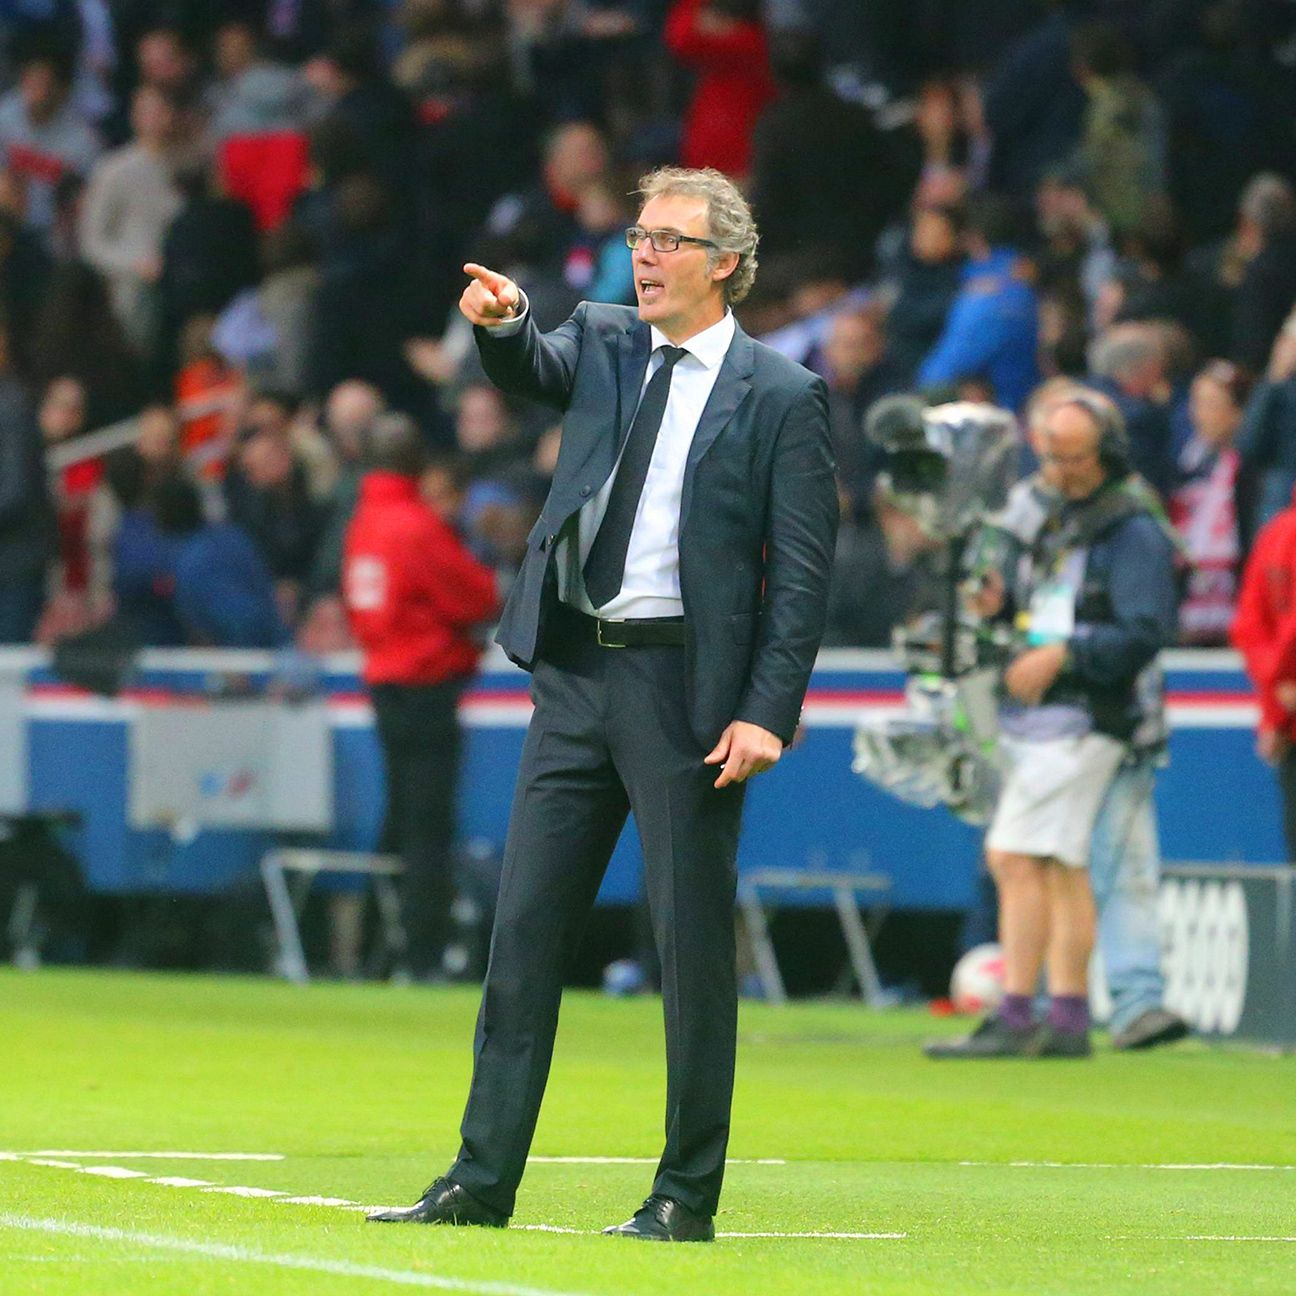 Laurent Blanc's PSG can claim first place in their group with a draw at the Camp Nou.